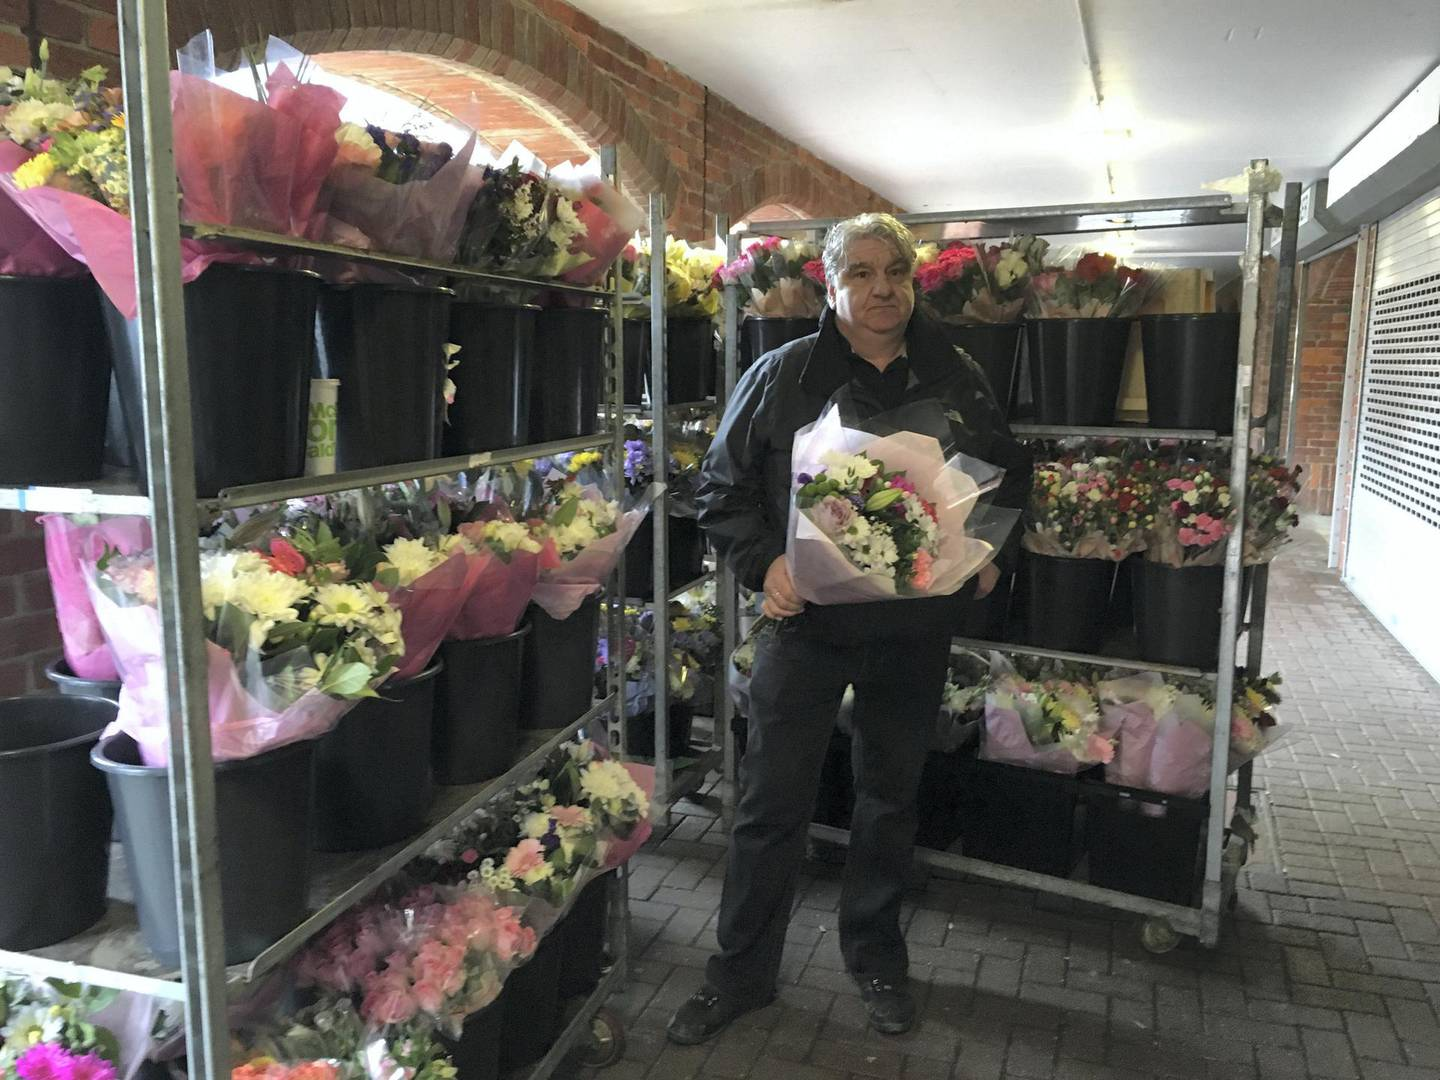 Mark Fitzpatrick with his unsold flowers in Salisbury. Photo by Paul Peachey